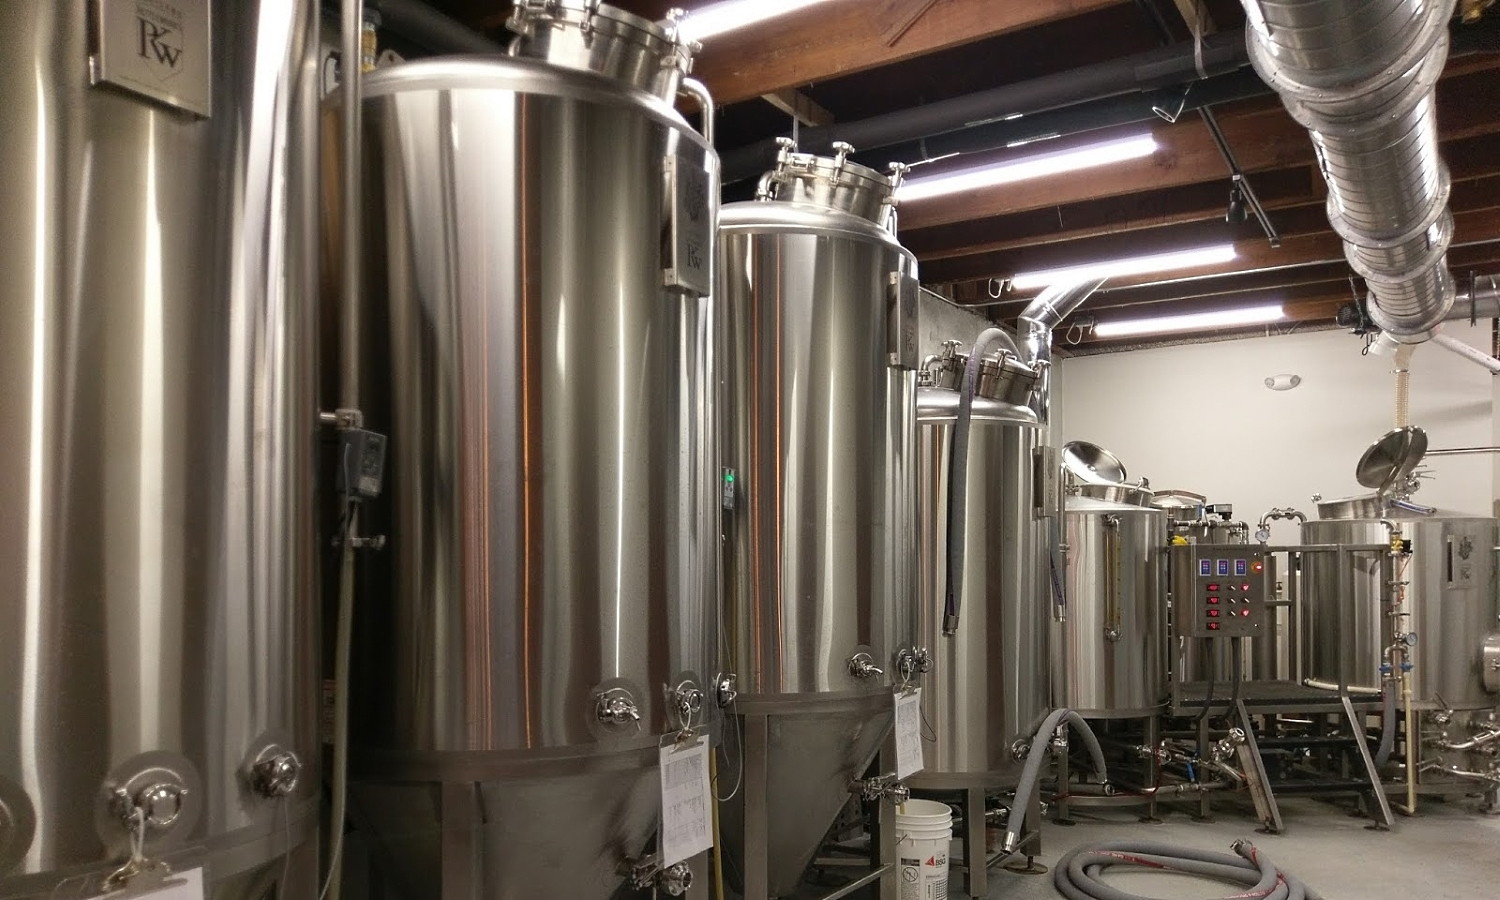 Tanks and other brewing equipmentNew Smyrna Beach Brewery, From Homebrewer to Pro Brewer